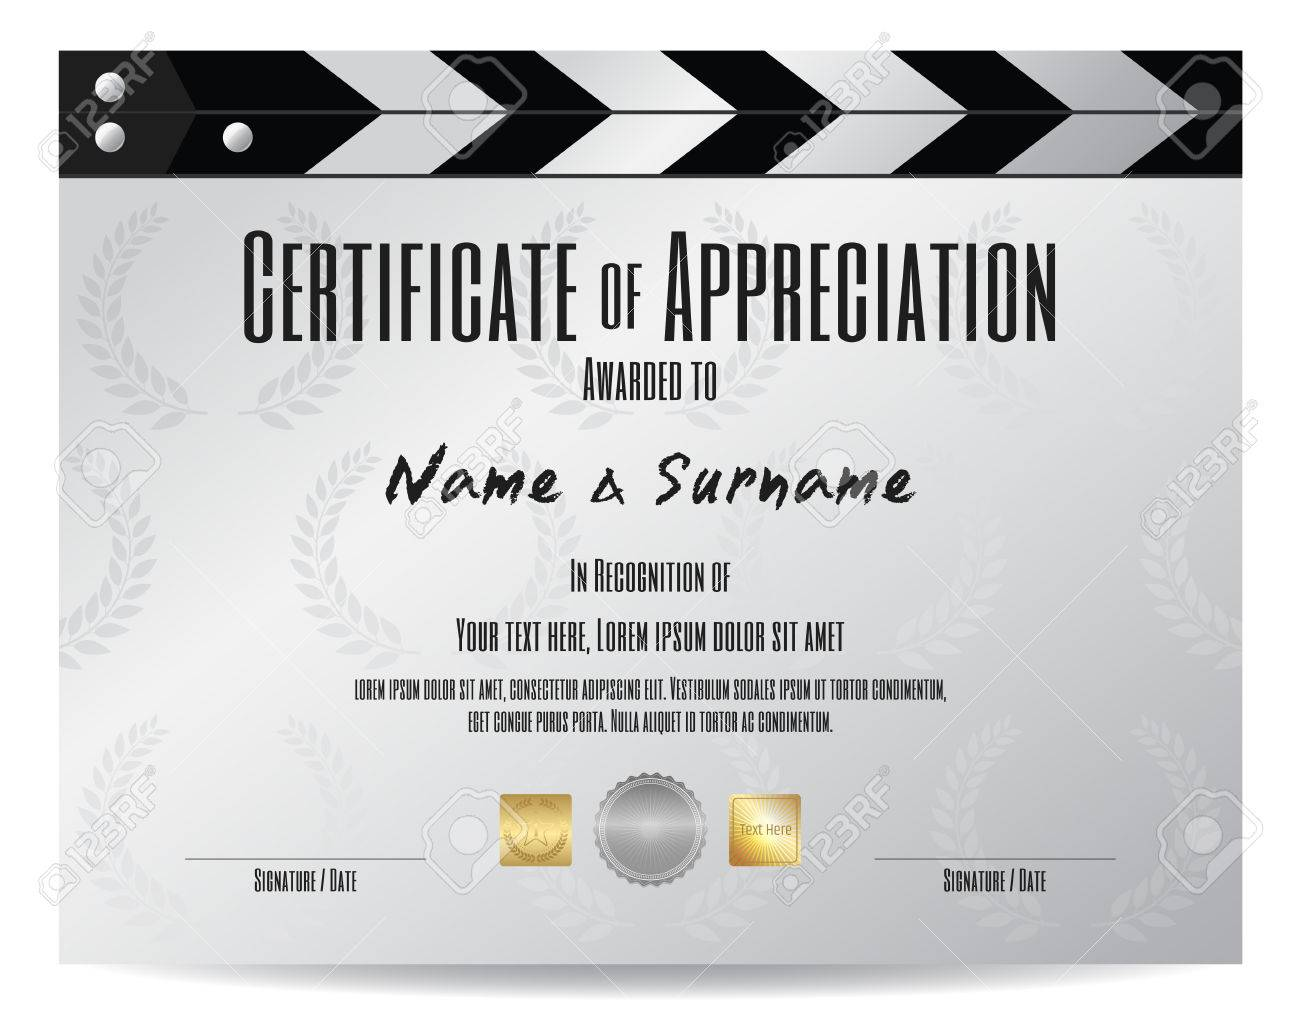 Certificate of appreciation with movie film slate in silver tone certificate of appreciation with movie film slate in silver tone theme stock vector 69934082 yelopaper Choice Image